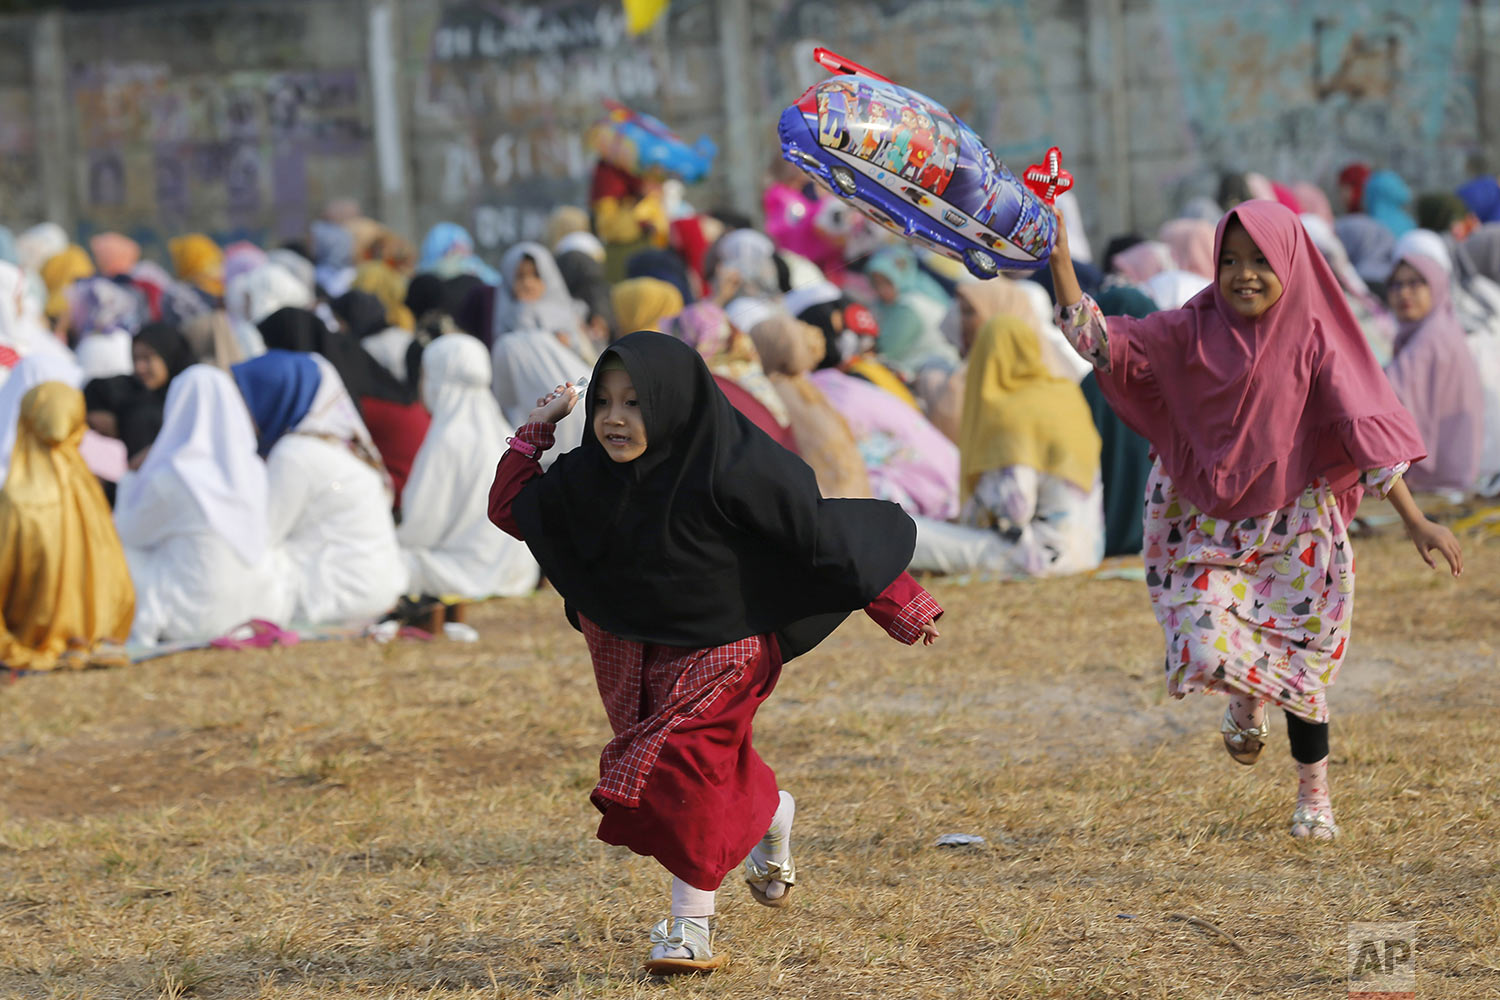 Children play with a balloon after a morning prayer marking Eid al-Adha holidays at a soccer field in South Tangerang, Indonesia, Sunday, Aug. 11, 2019.  (AP Photo/Tatan Syuflana)